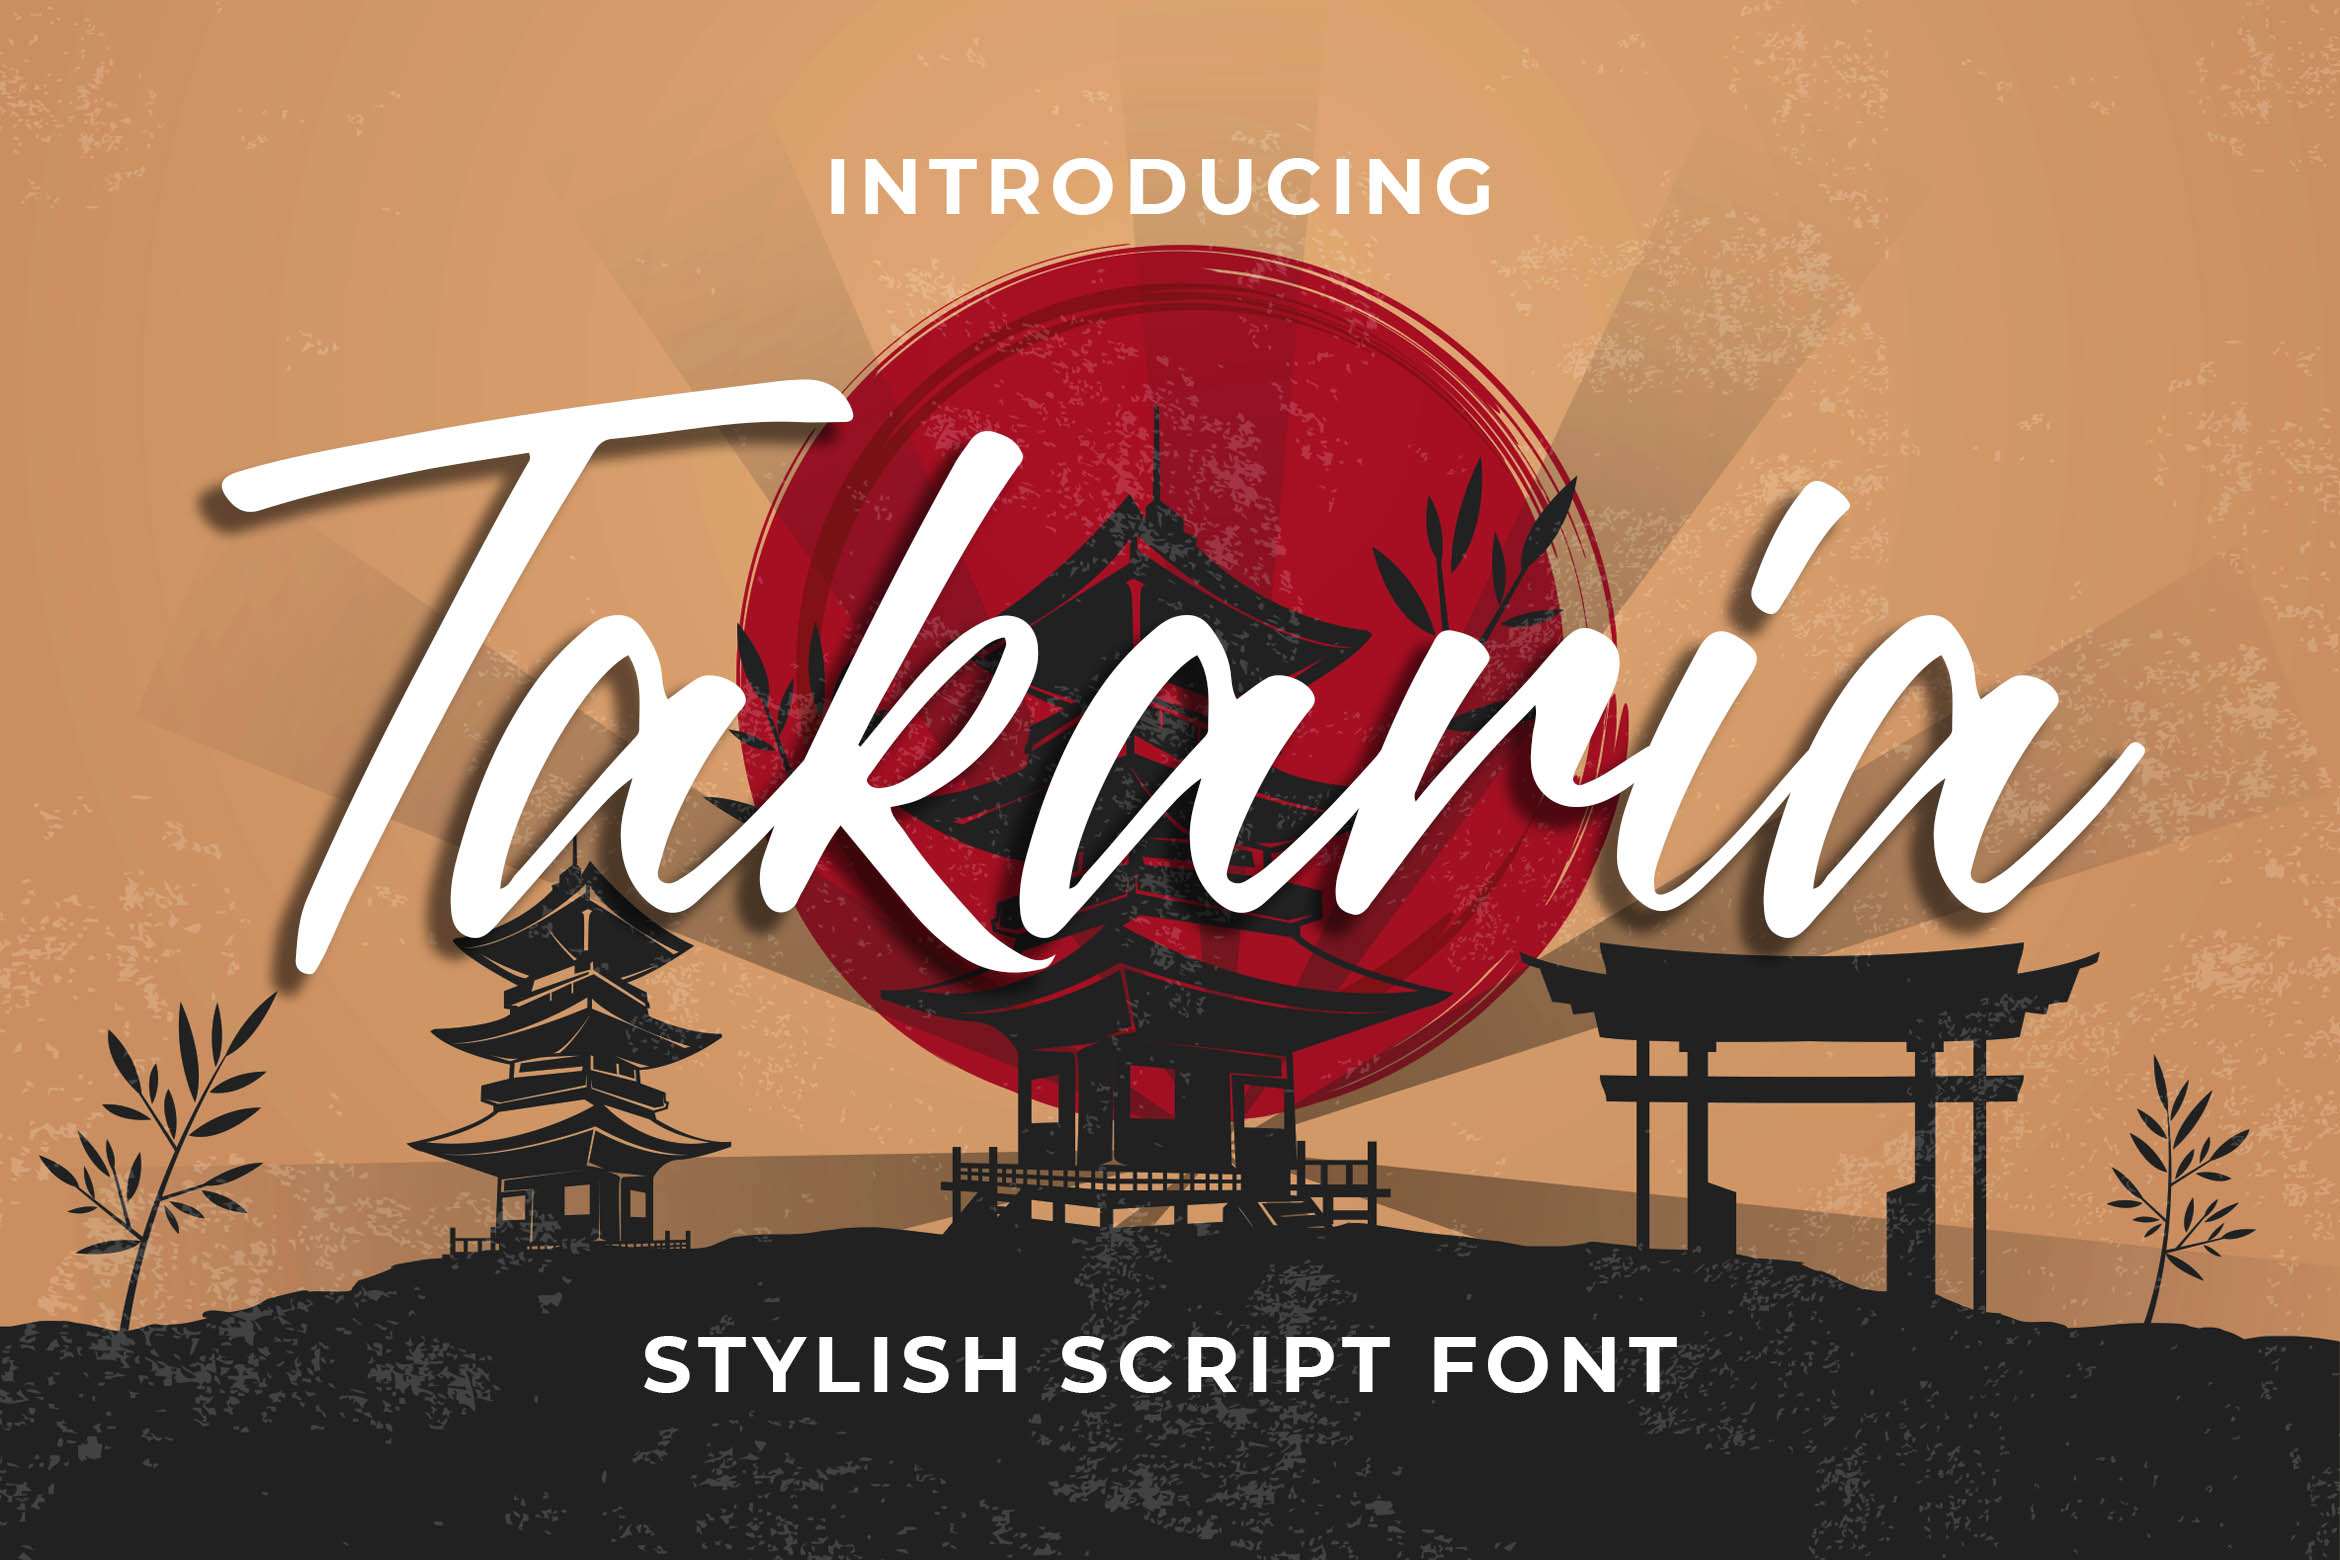 Takaria - a Stylish Sciprt Font example image 1